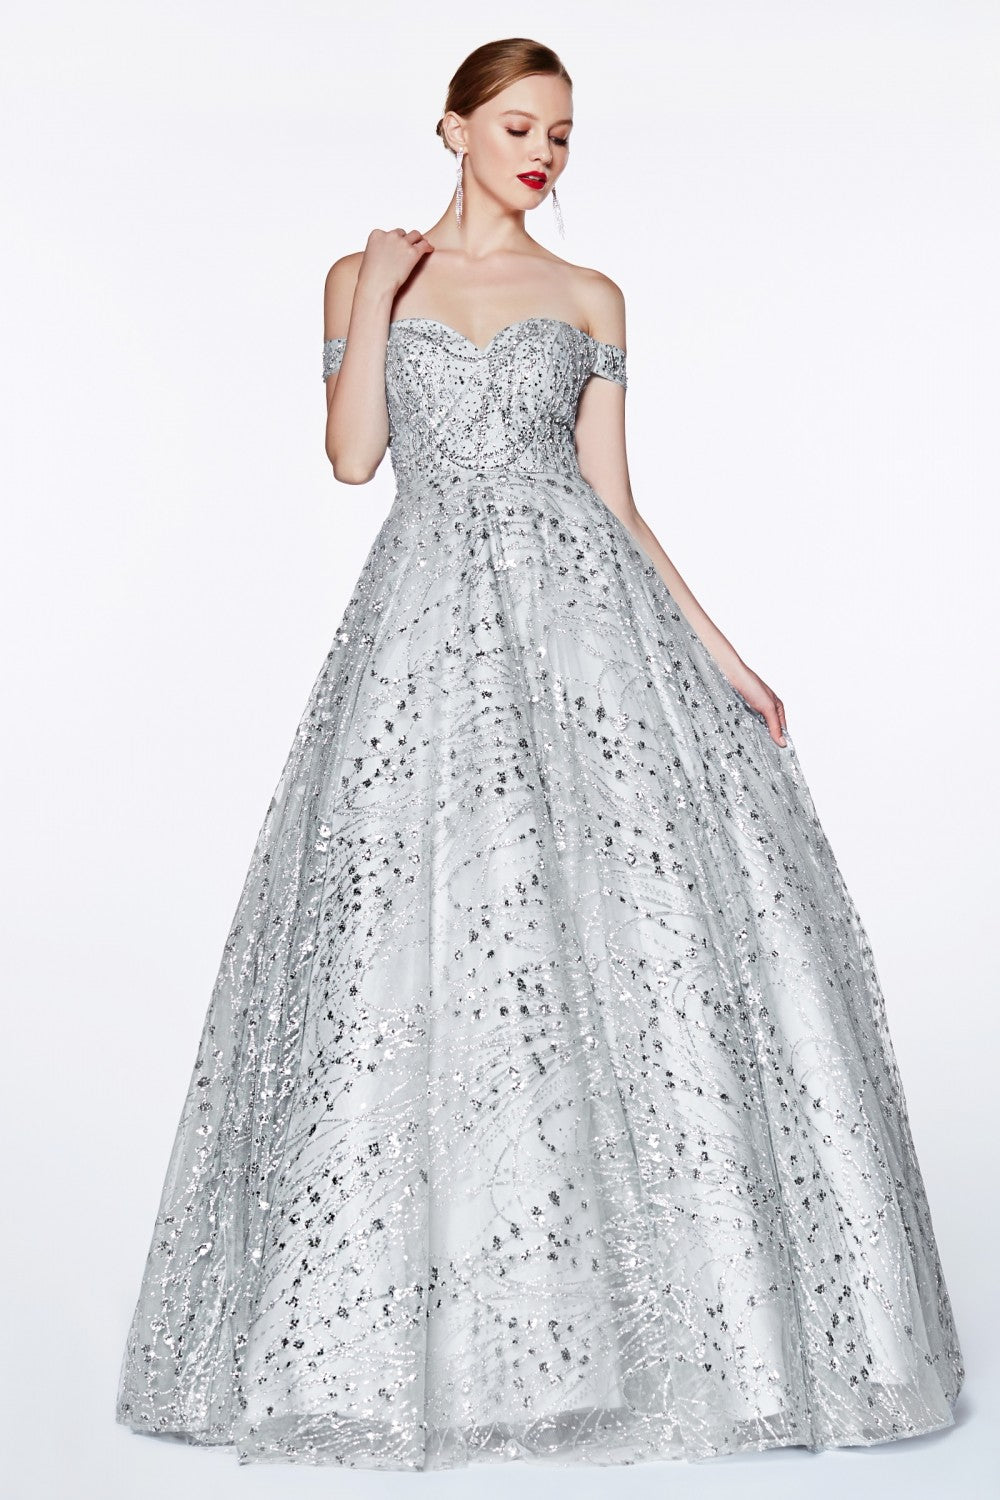 Off The Shoulder Glitter Gown With Sweetheart Neckline And Beaded Bodice